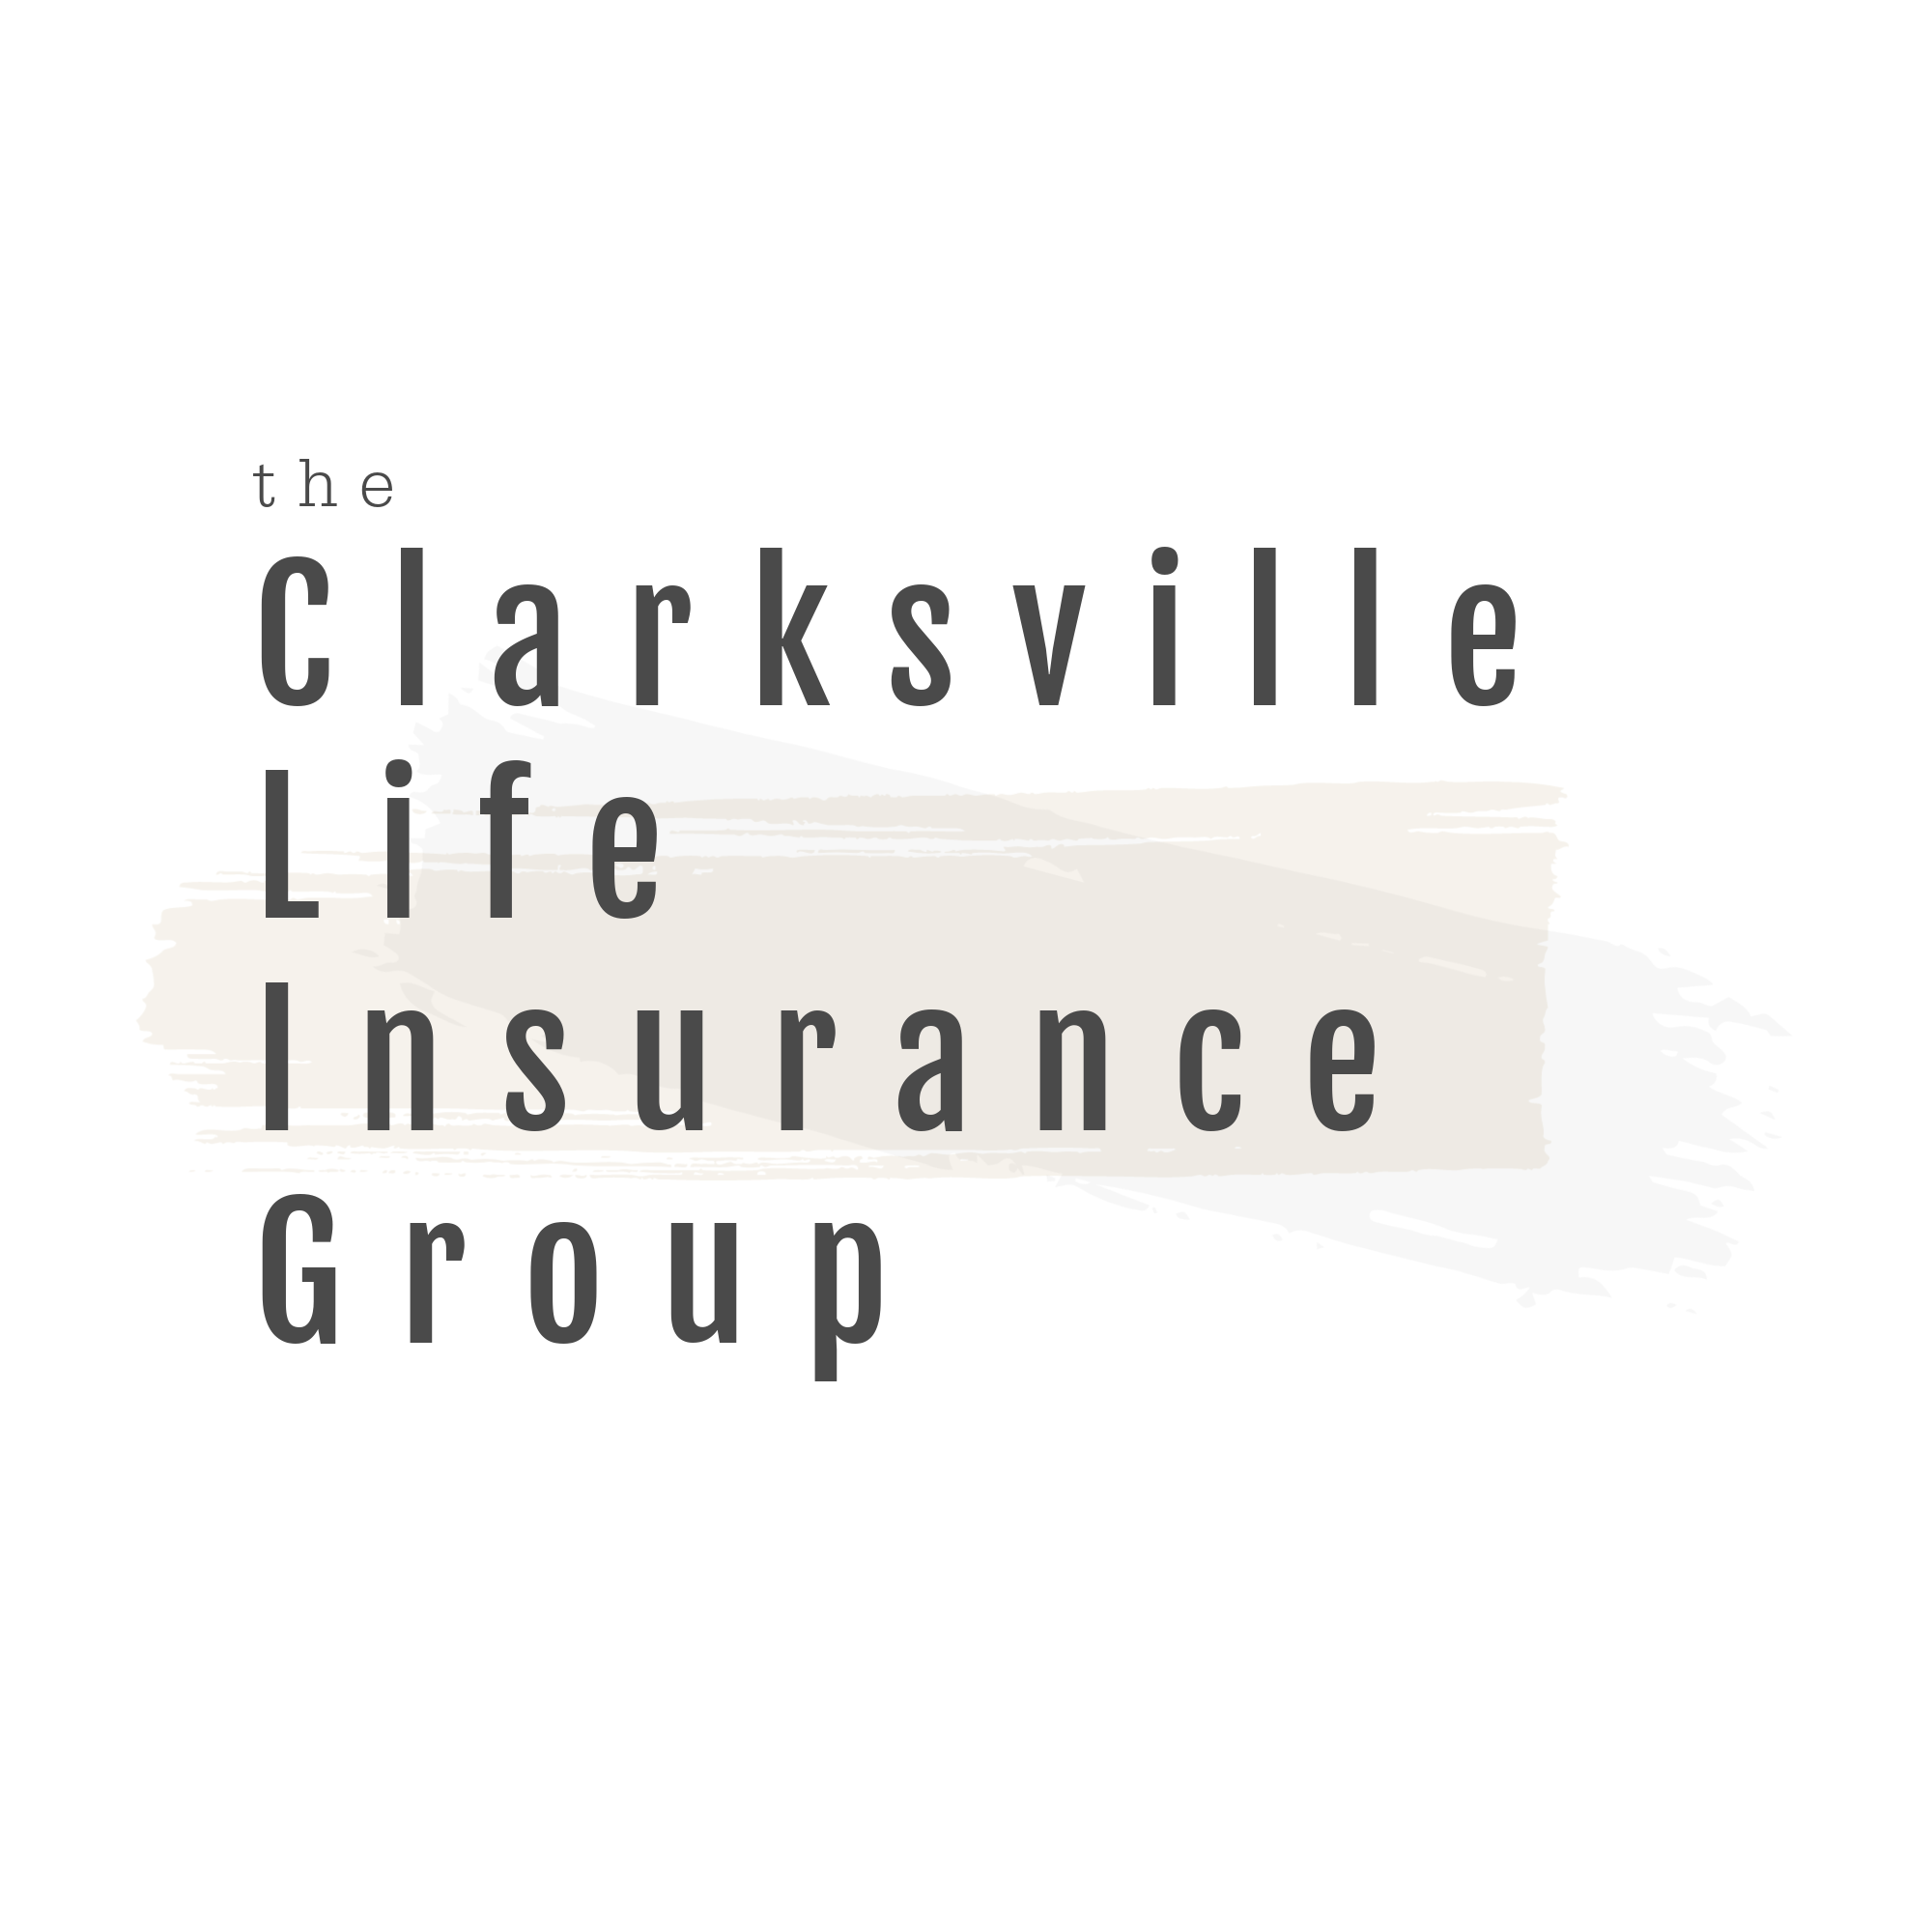 Clarksville Life Insurance Group